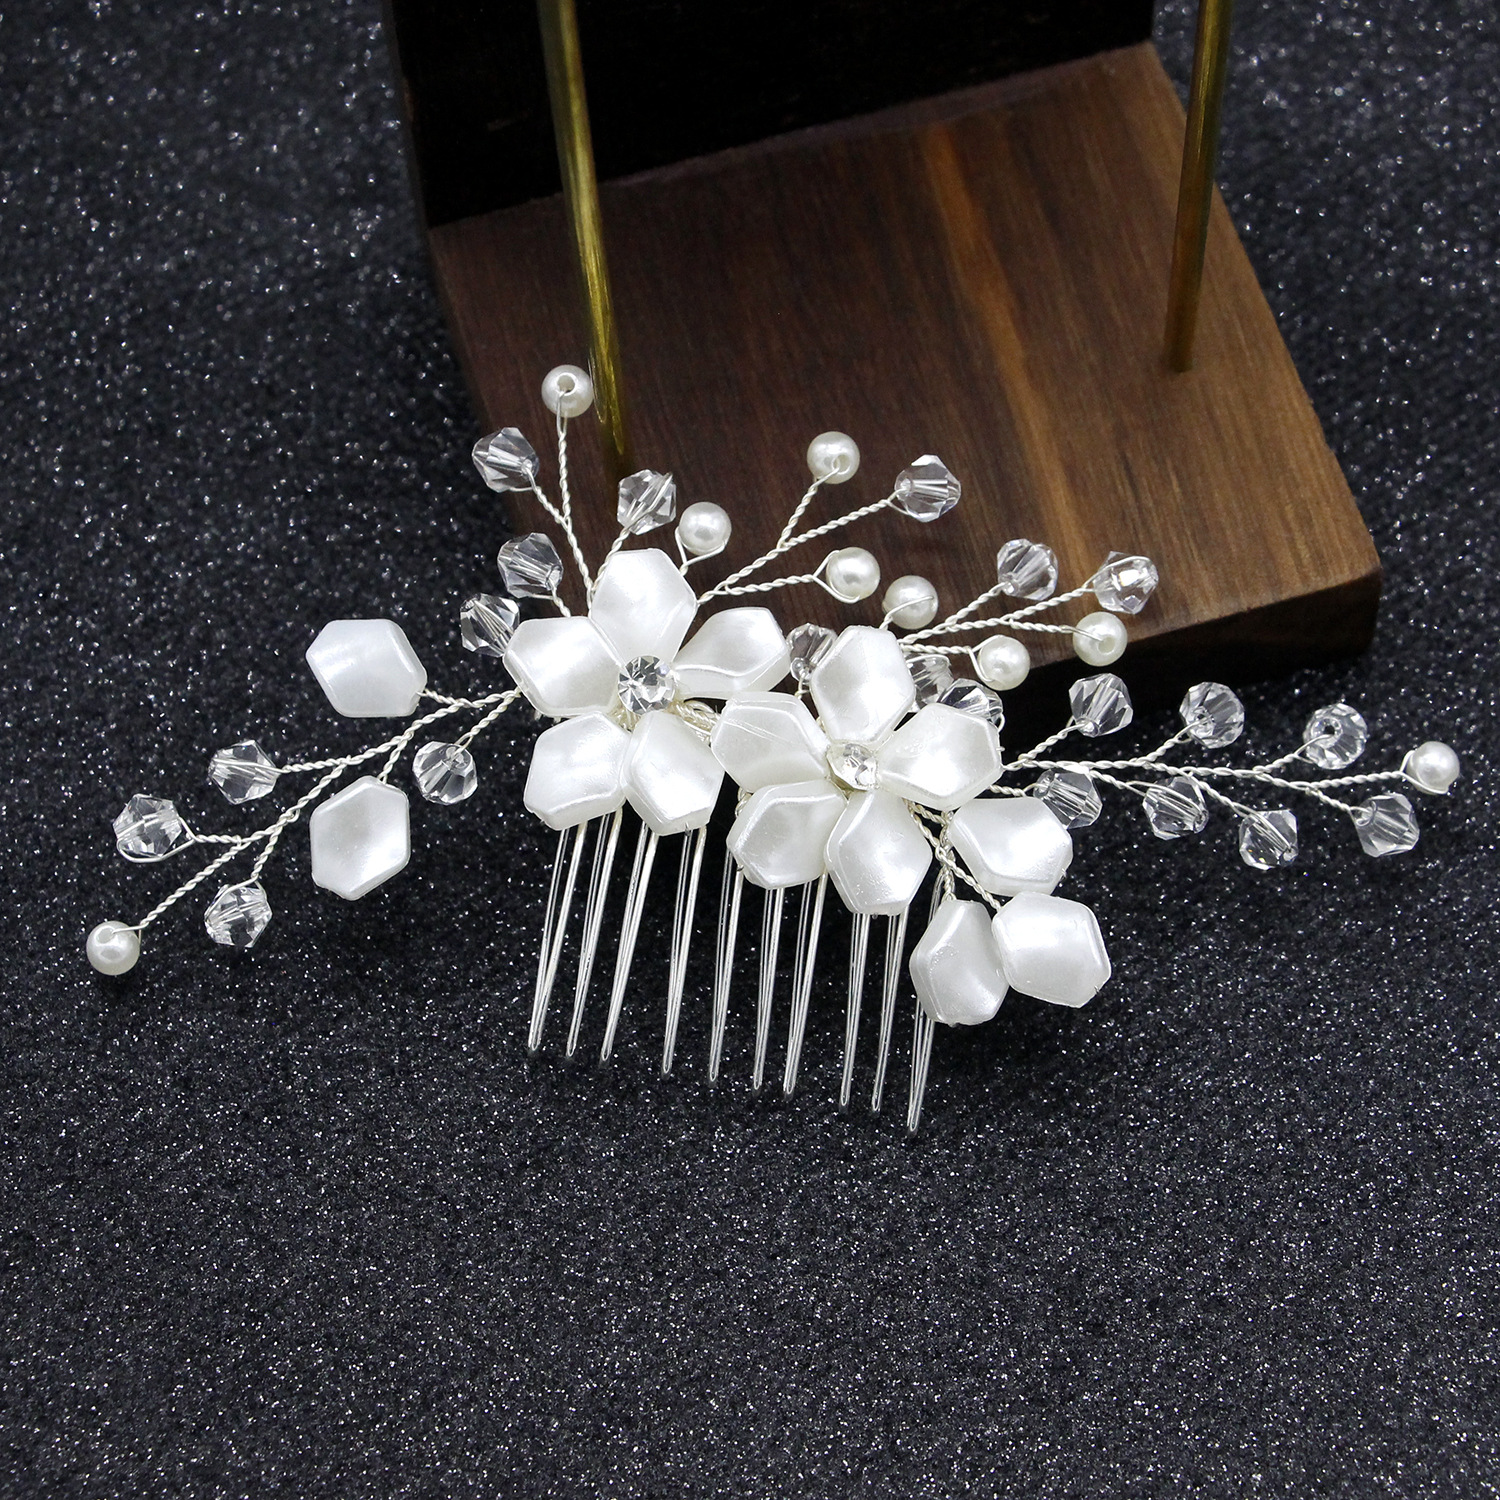 us $5.22 11% off|white gold wedding hair combs handmade crystal pearl bridal wedding accessories hair jewelry 2019 new wedding hair piece-in bridal